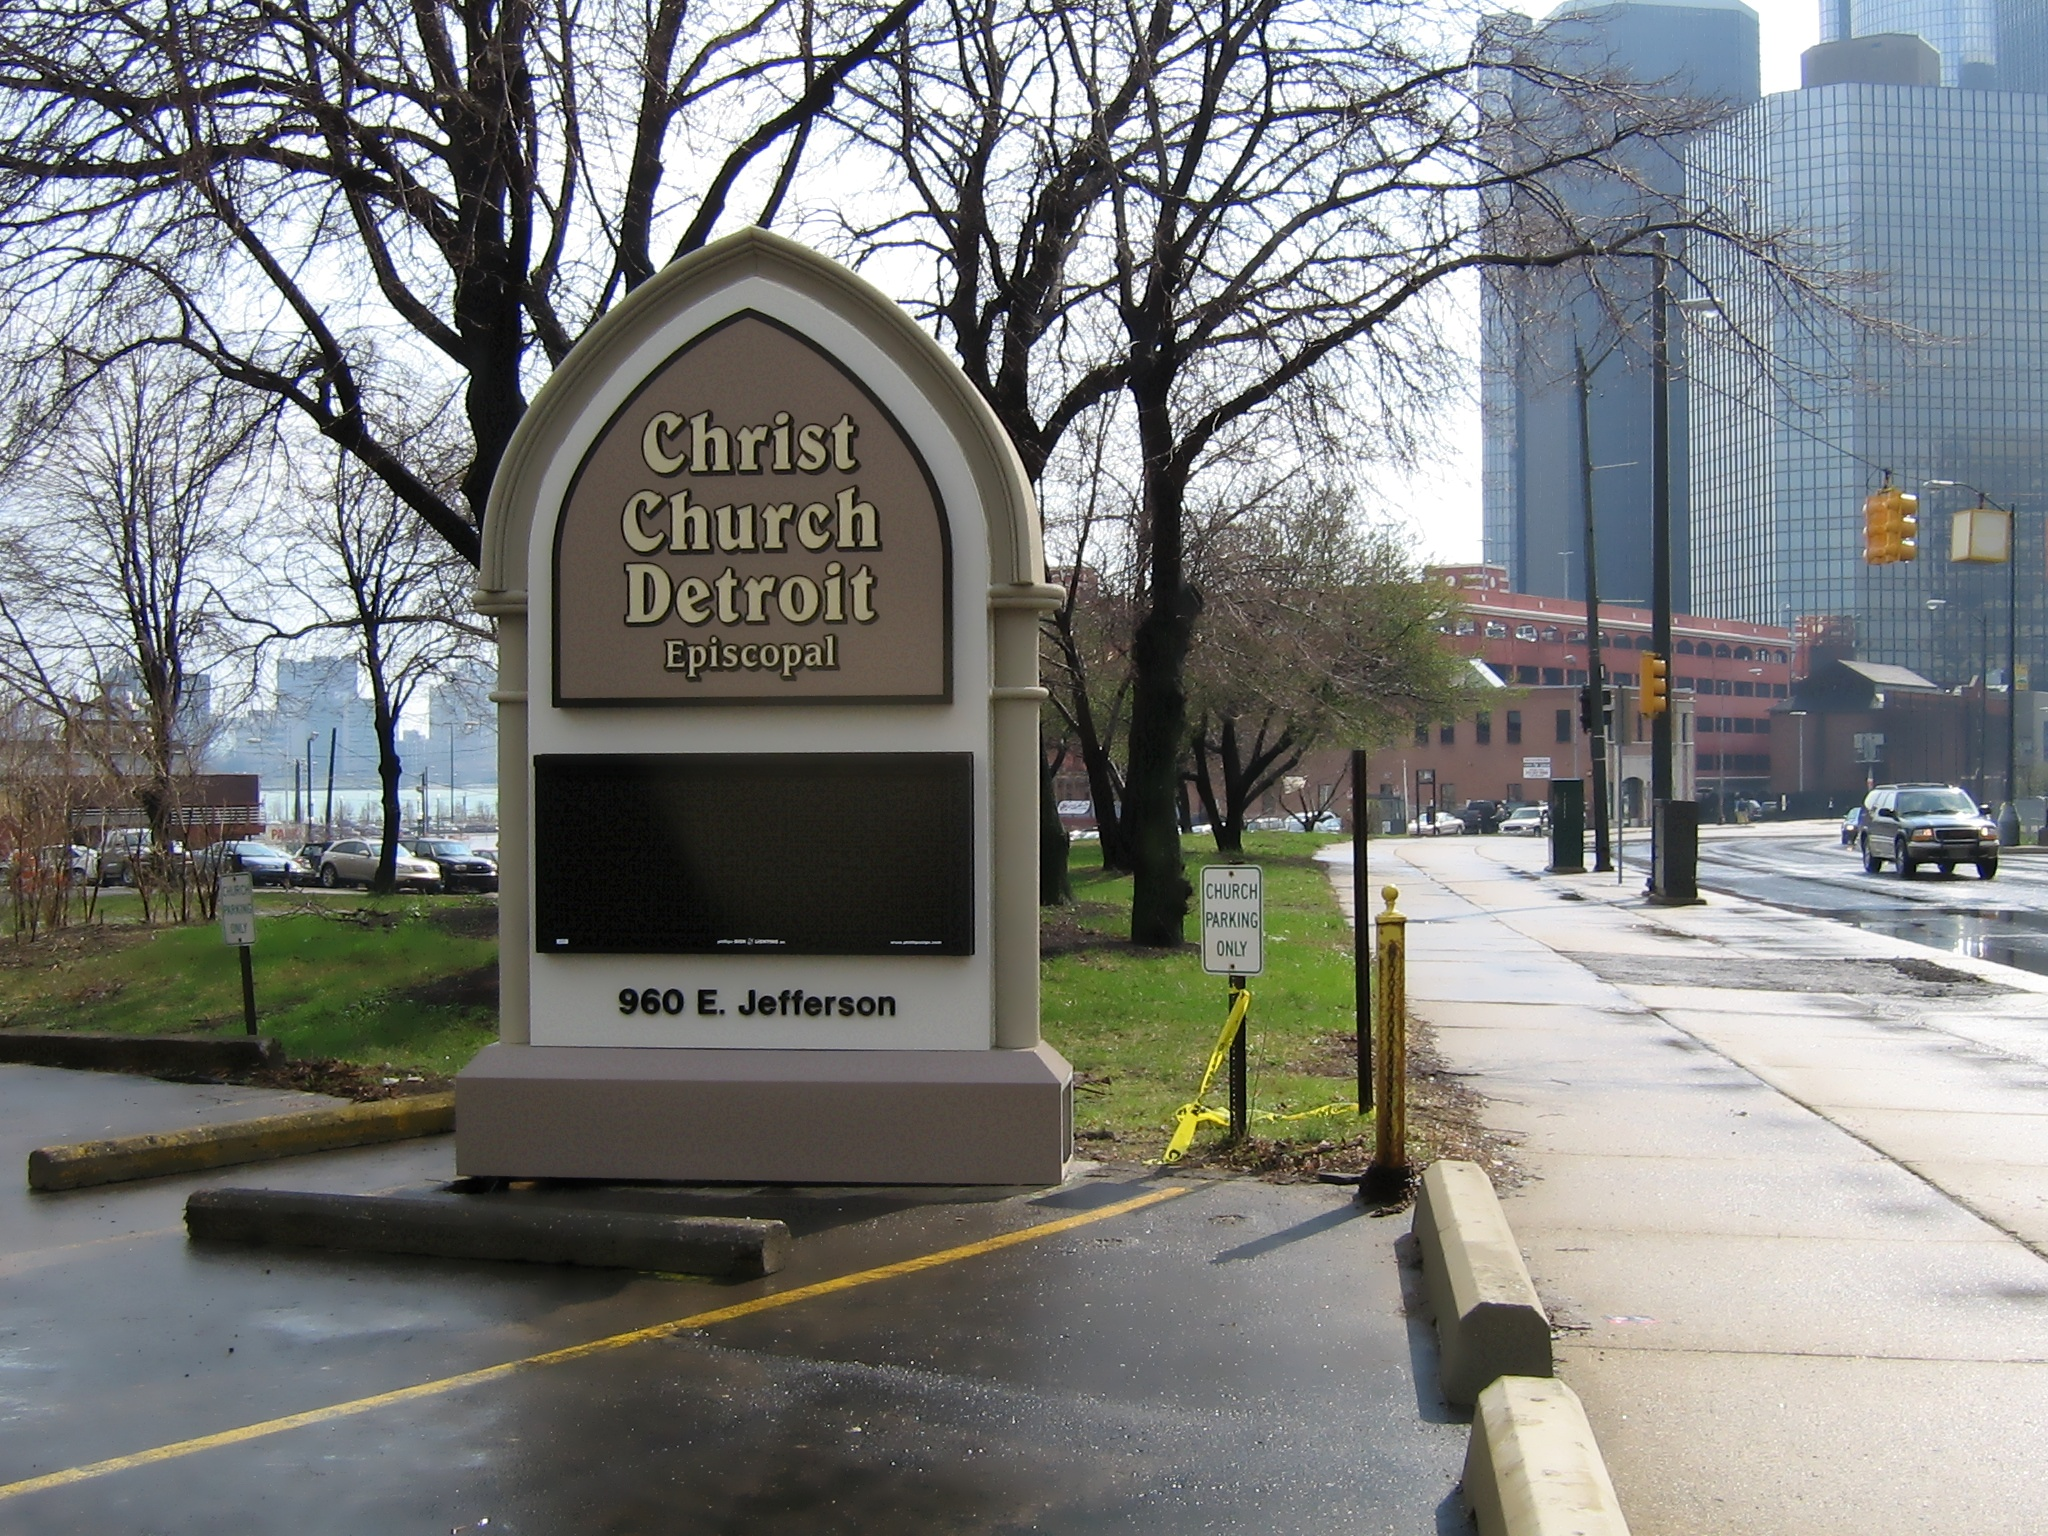 Christ Church - Detroit